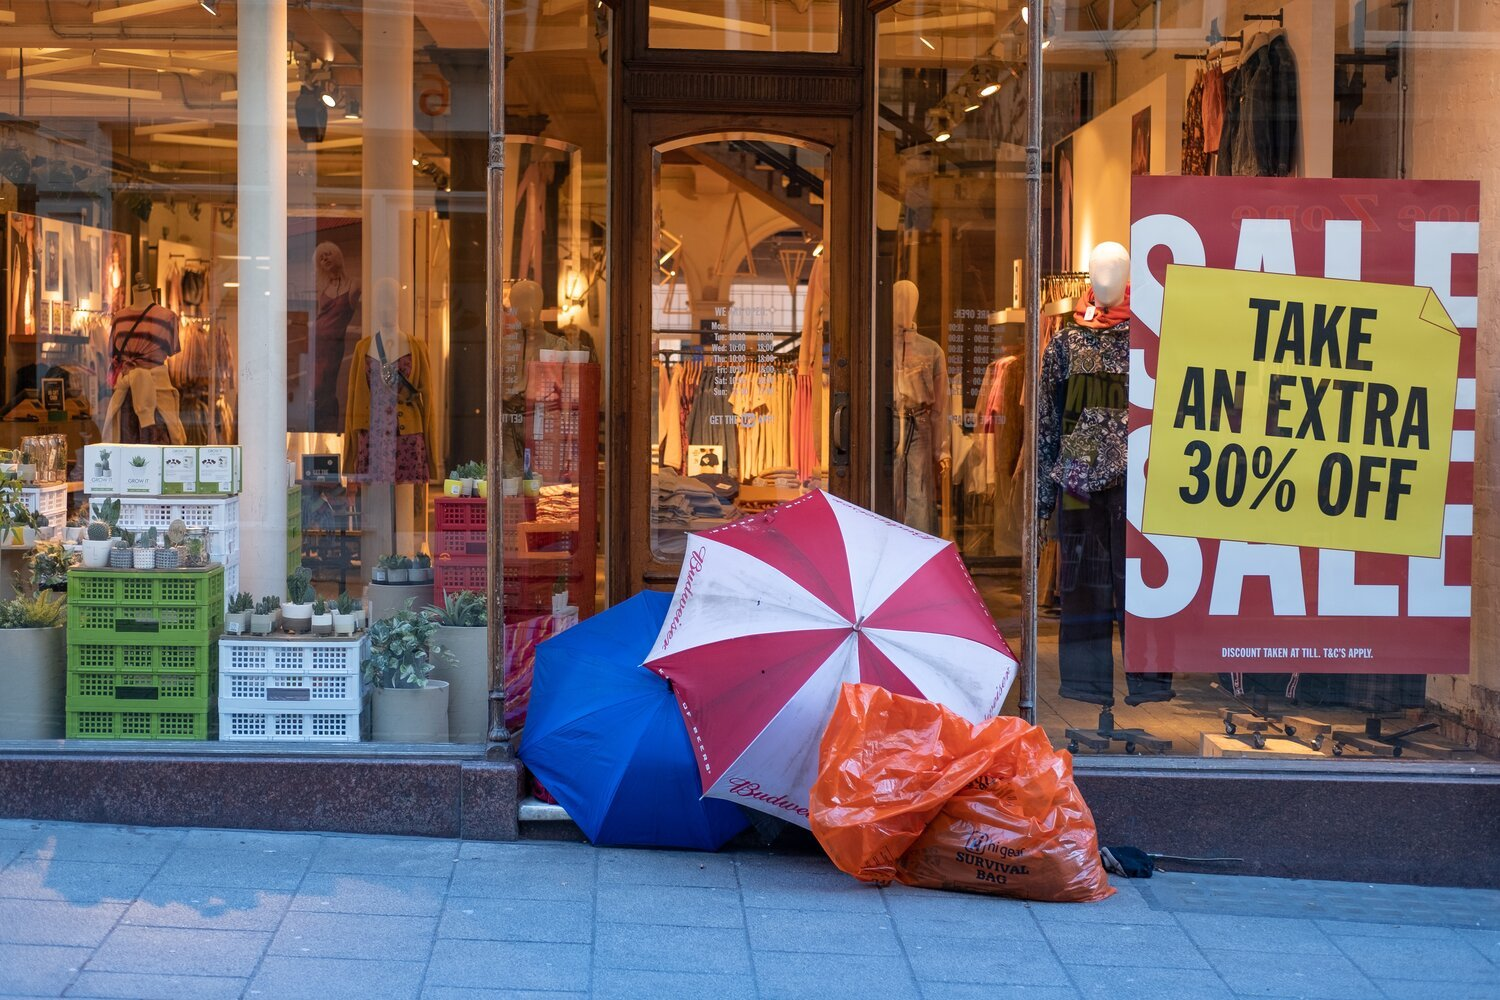 Consequences of the neoliberal agenda - a homeless person's camp in front a store going out of business.